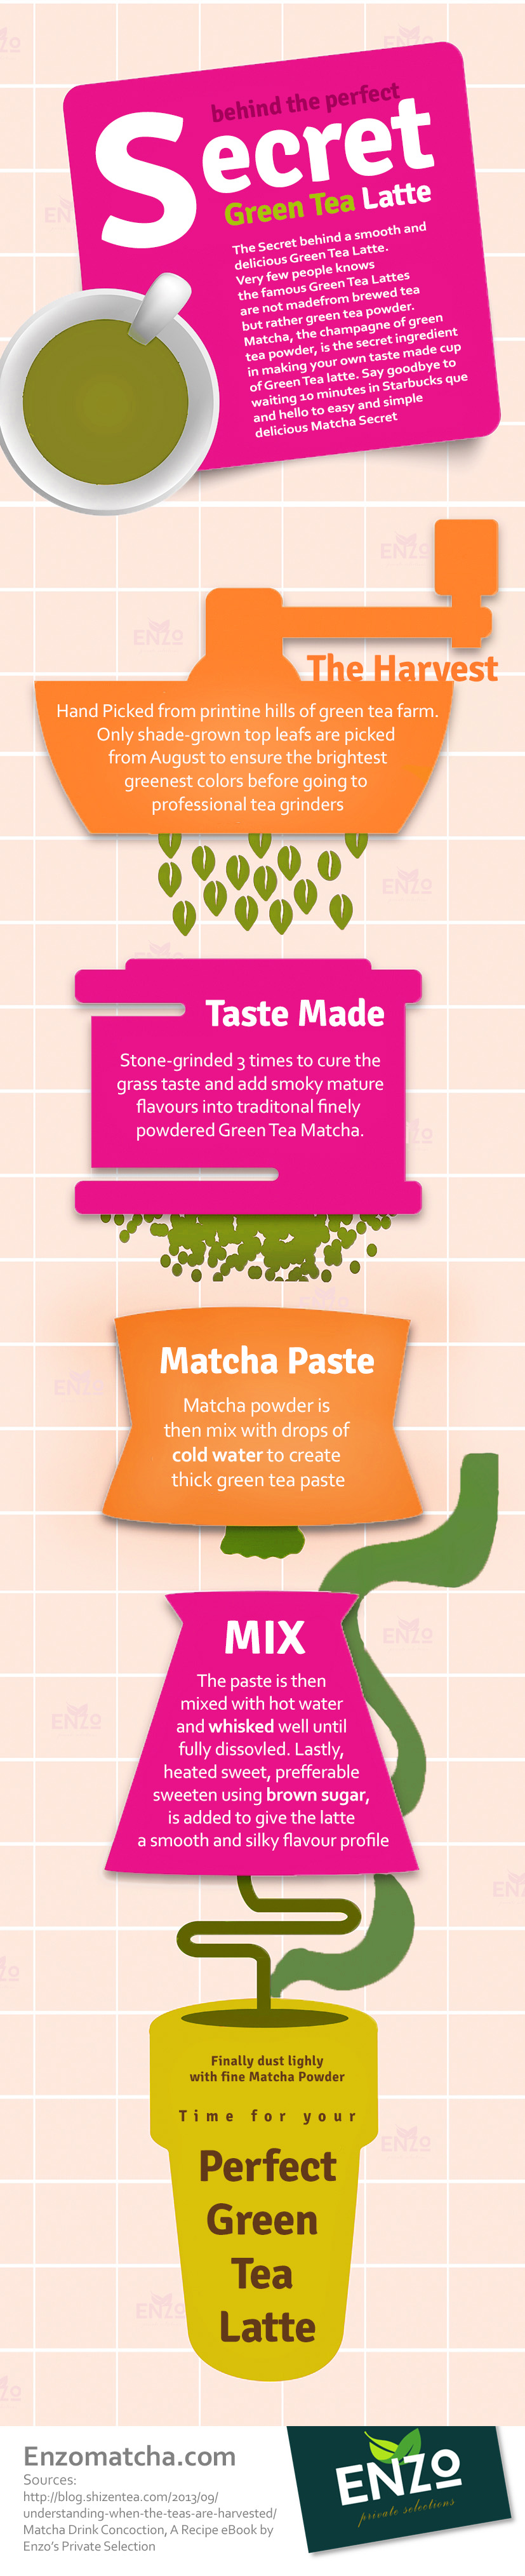 How make the Perfect Green Tea Latte Info